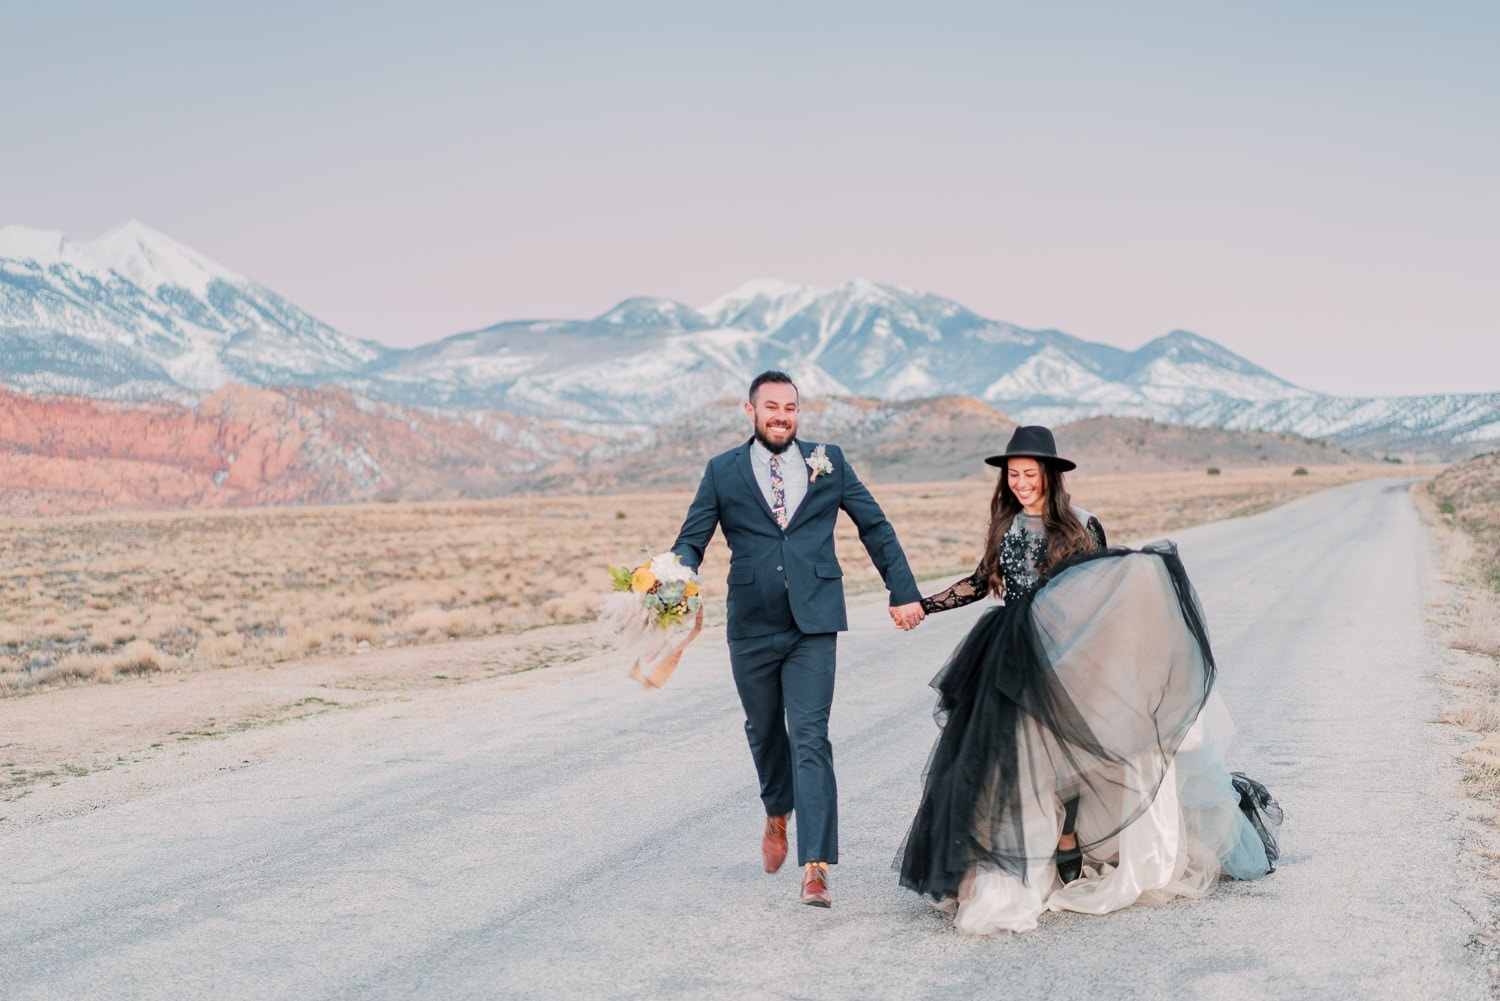 fun elopement photography in Moab, Utah